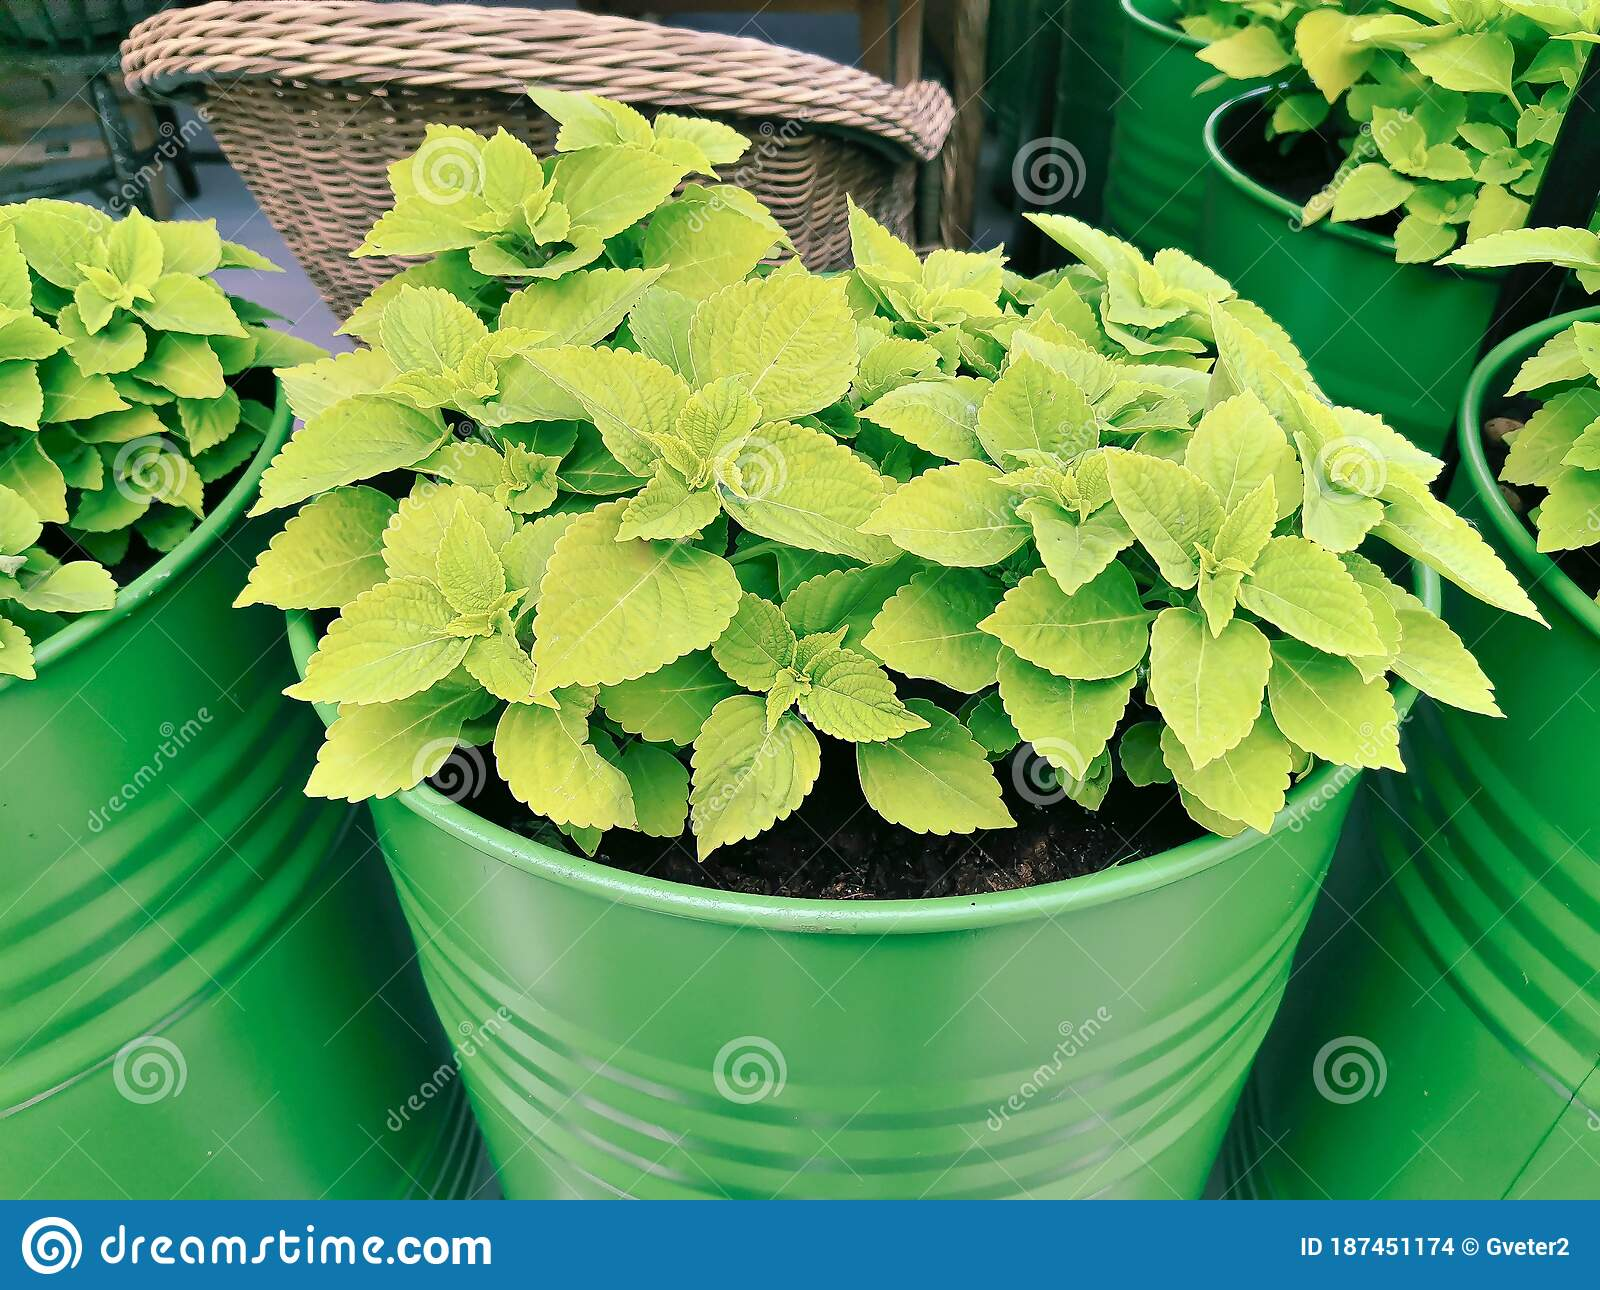 Exterior Design Of The Outdoor Area Of The Restaurant With Green Plants In Green Metallic Barrels Stock Photo Image Of Lifestyle Botanical 187451174